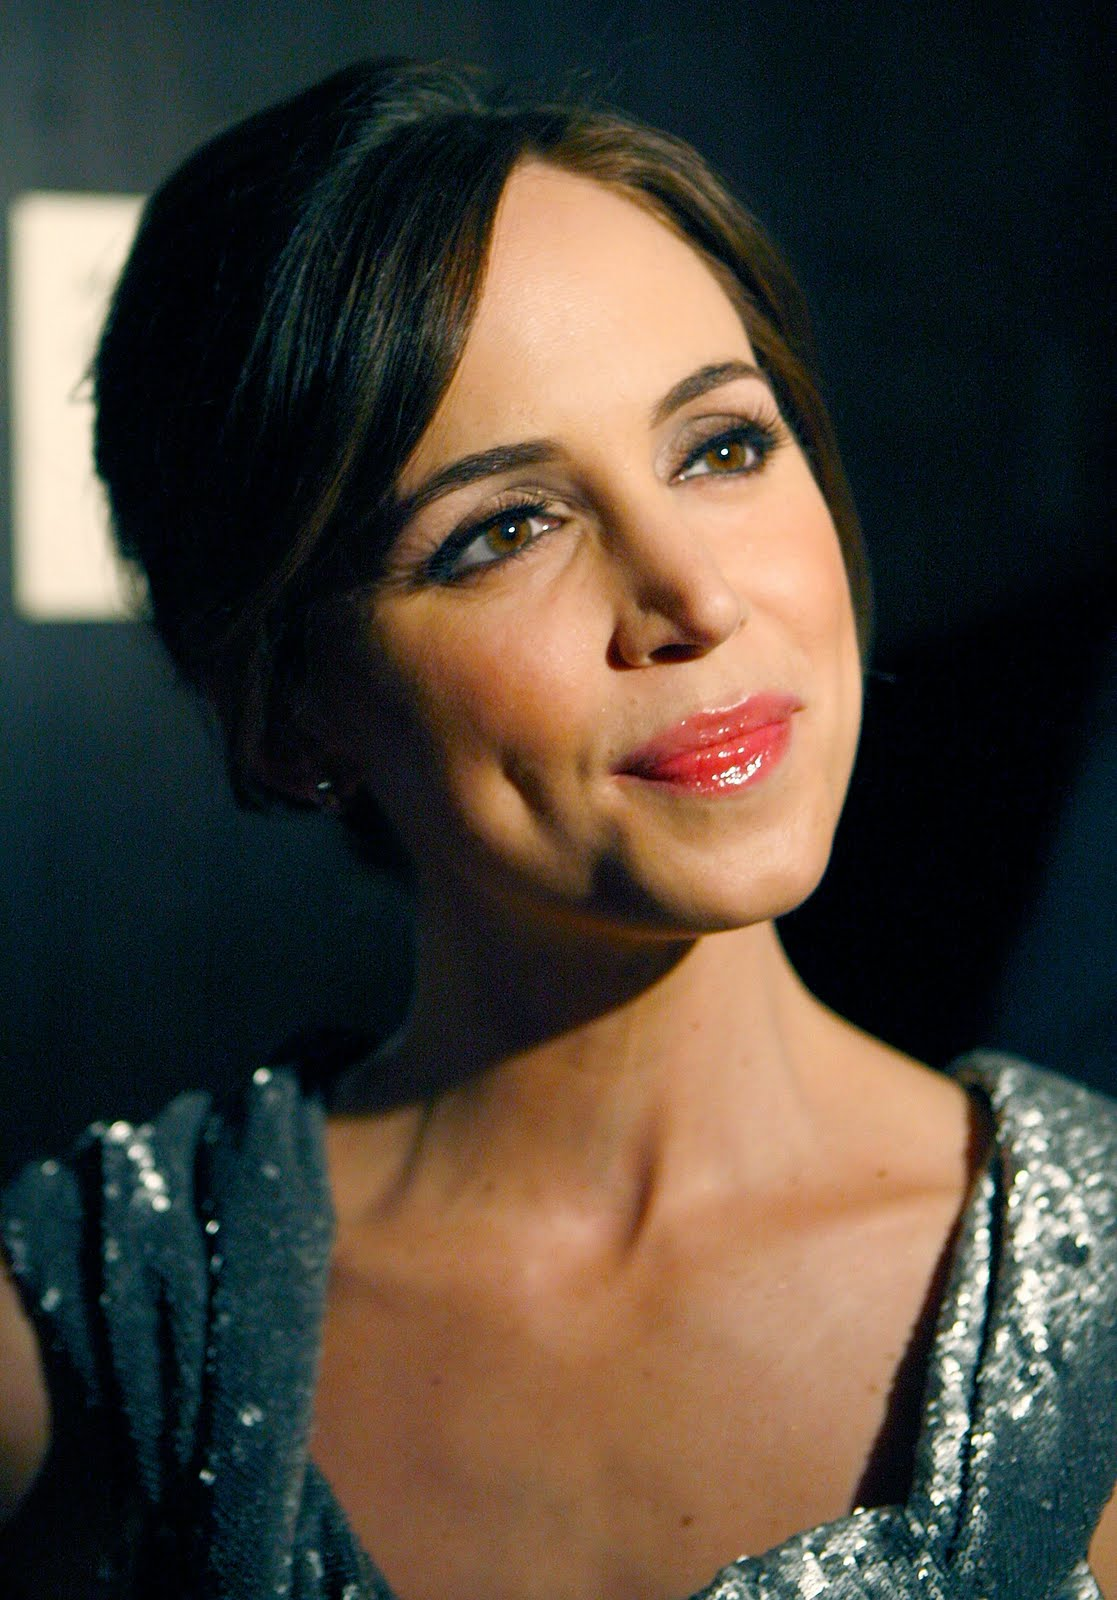 http://4.bp.blogspot.com/-RTcQ3s6WJcs/TlxpJZd1WtI/AAAAAAAABK8/1rDoznBQ37g/s1600/Eliza_Dushku_Actress_Free_Download_High_Resolution_HD_HQ_Desktop_Backgrounds_Face_Wallpapers_21019.jpg